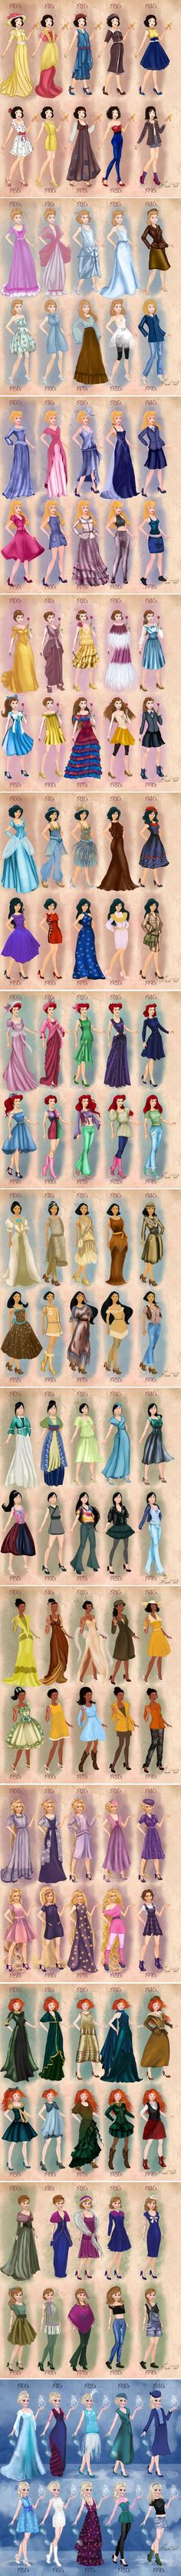 Disney Princesses in 20th Century Fashion. I love this so much.